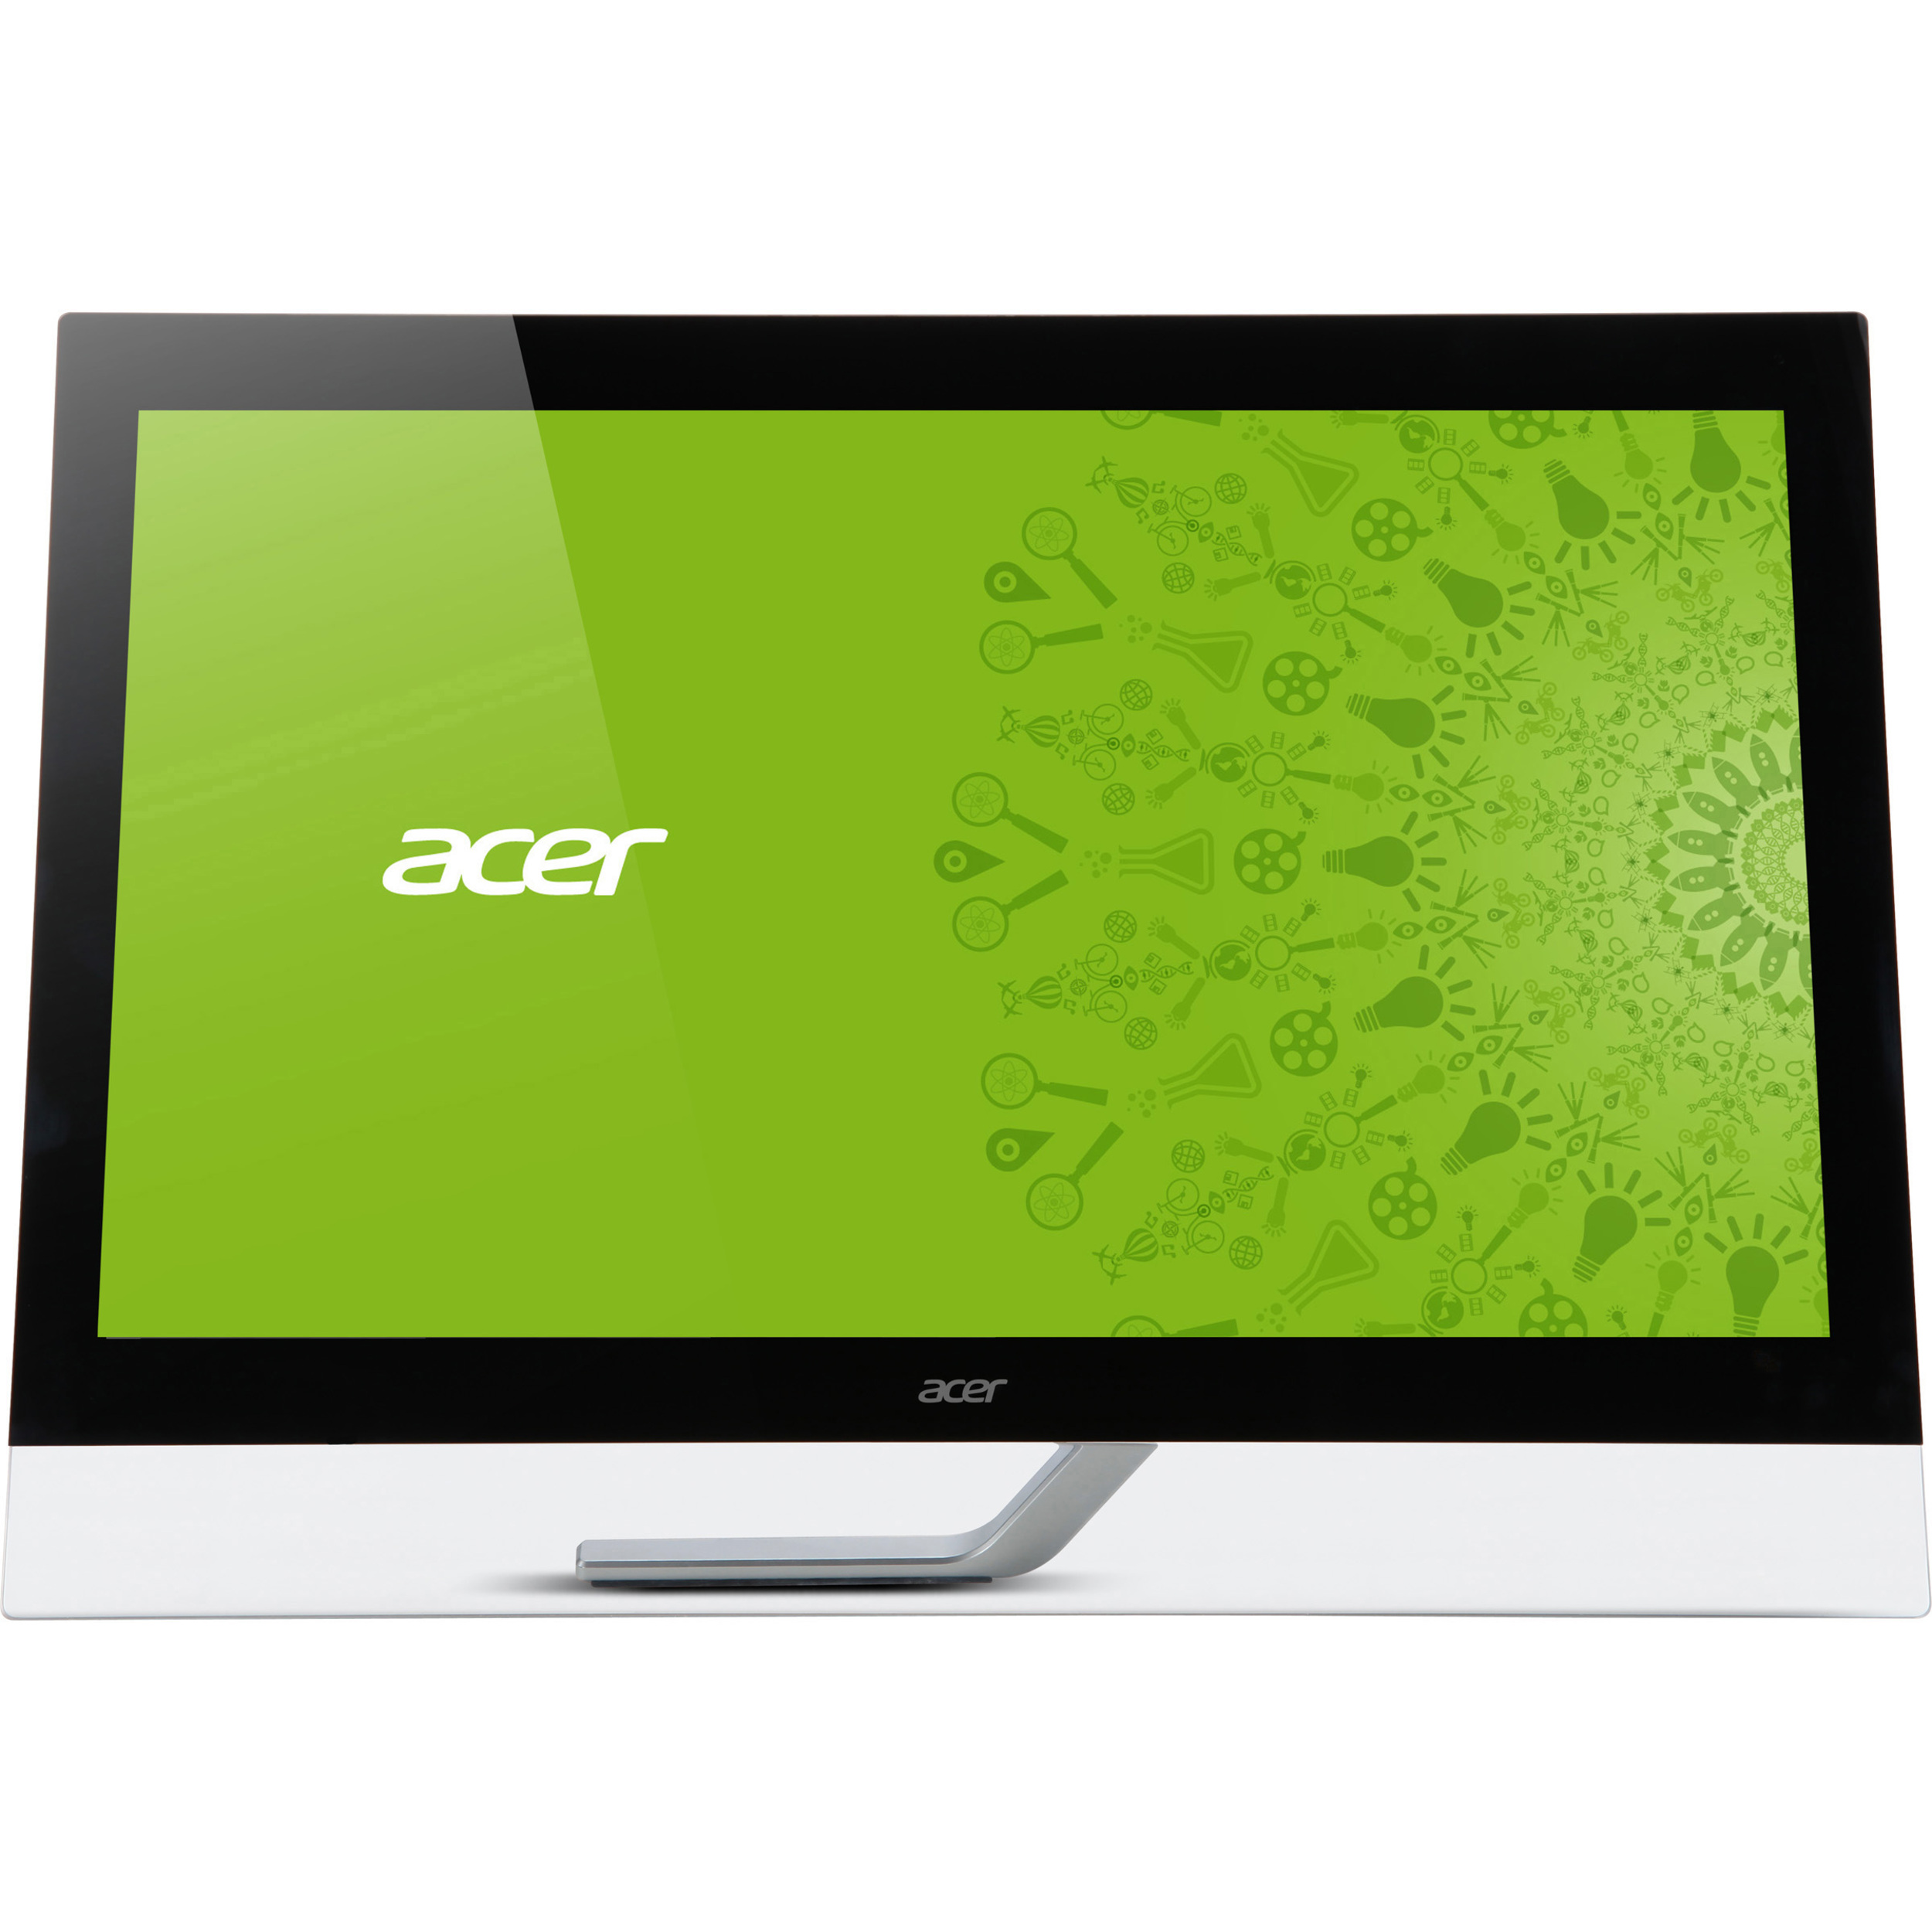 Acer T272HL 68.6 cm 27inch LED LCD Touchscreen Monitor - 16:9 - 5 ms